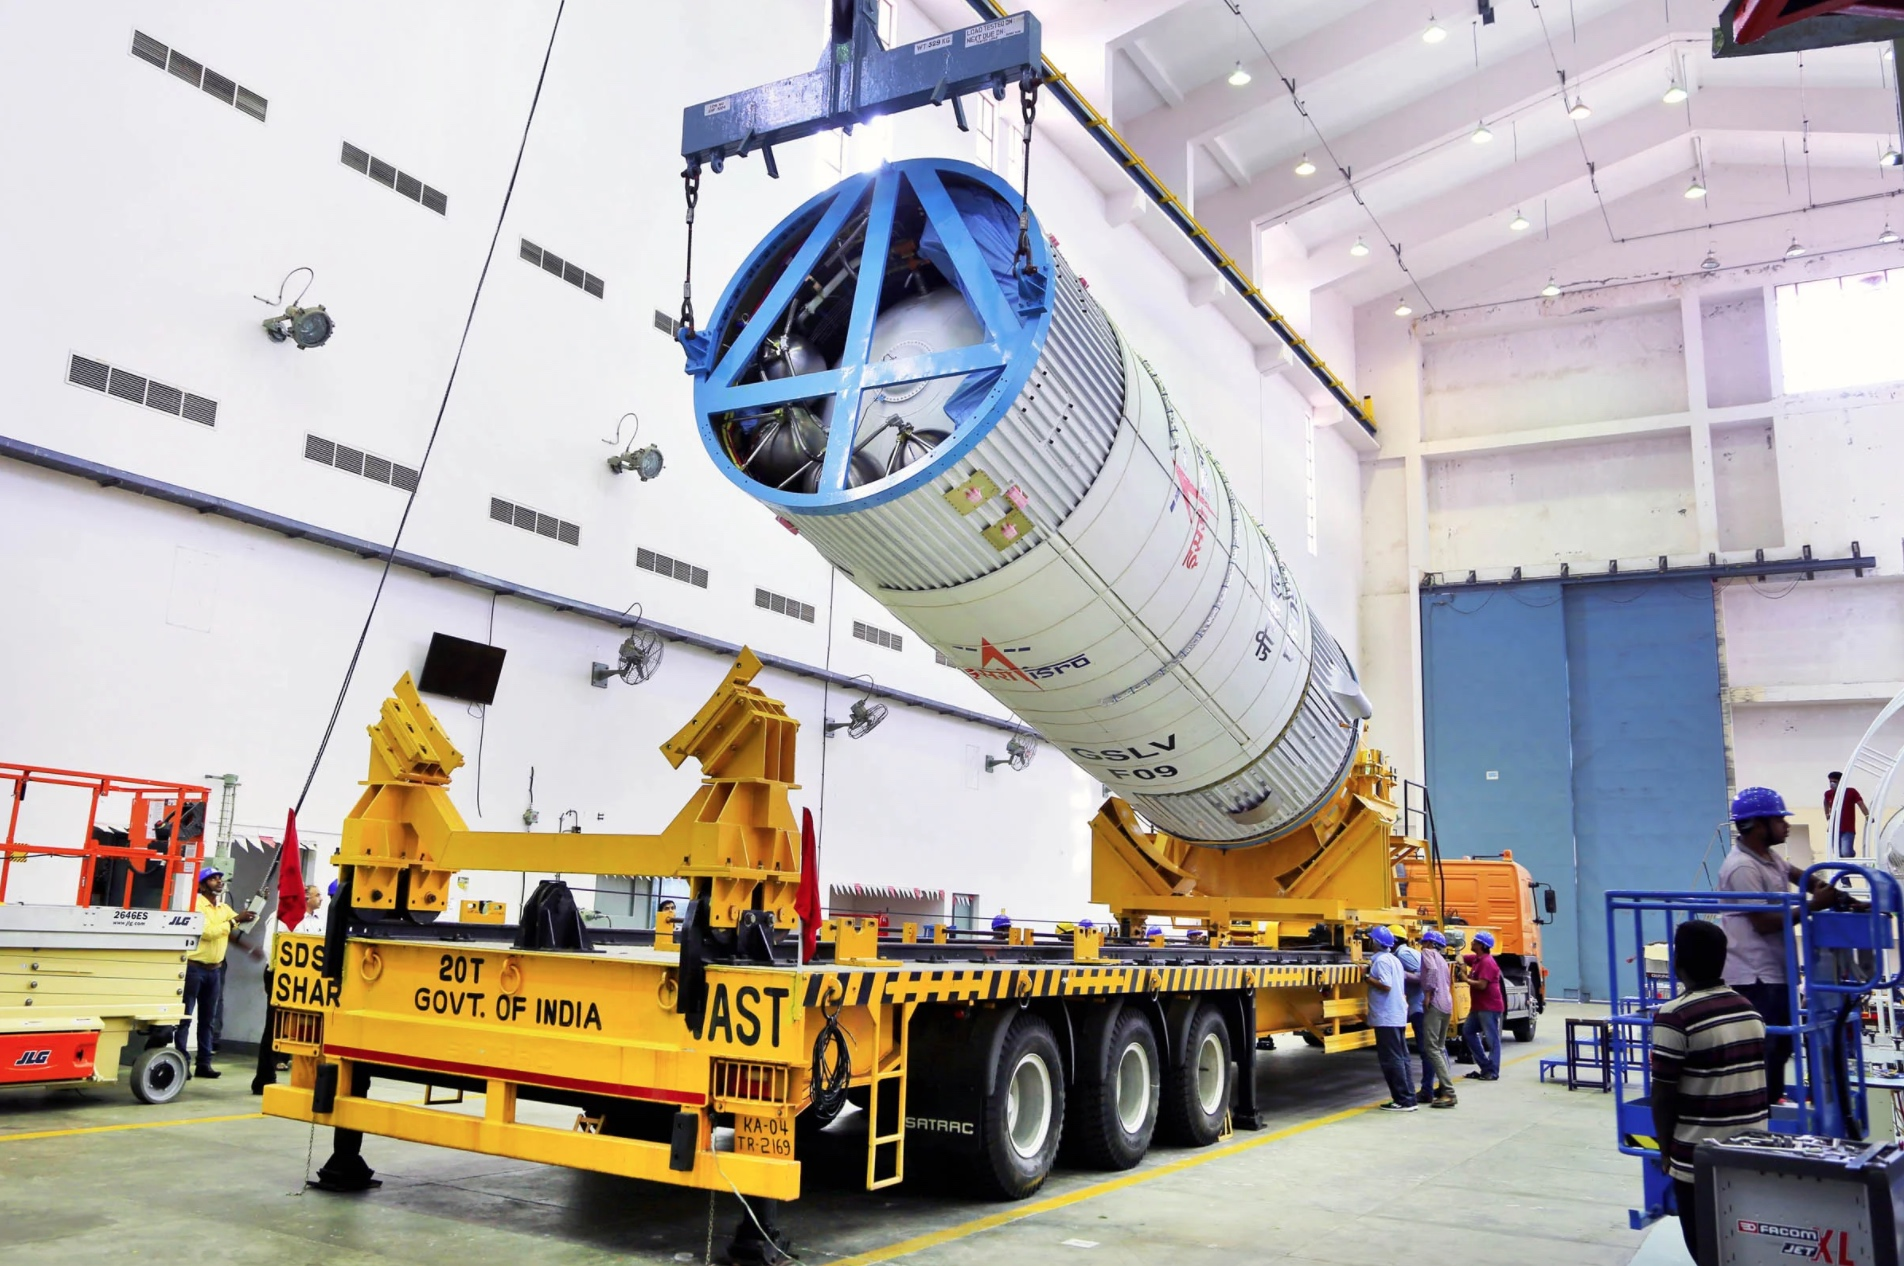 The second stage of the GSLV F09 during vehicle integration. The rocket will place the South Asia Satellite in a geosynchronous orbit at 48º E. Credit: ISRO